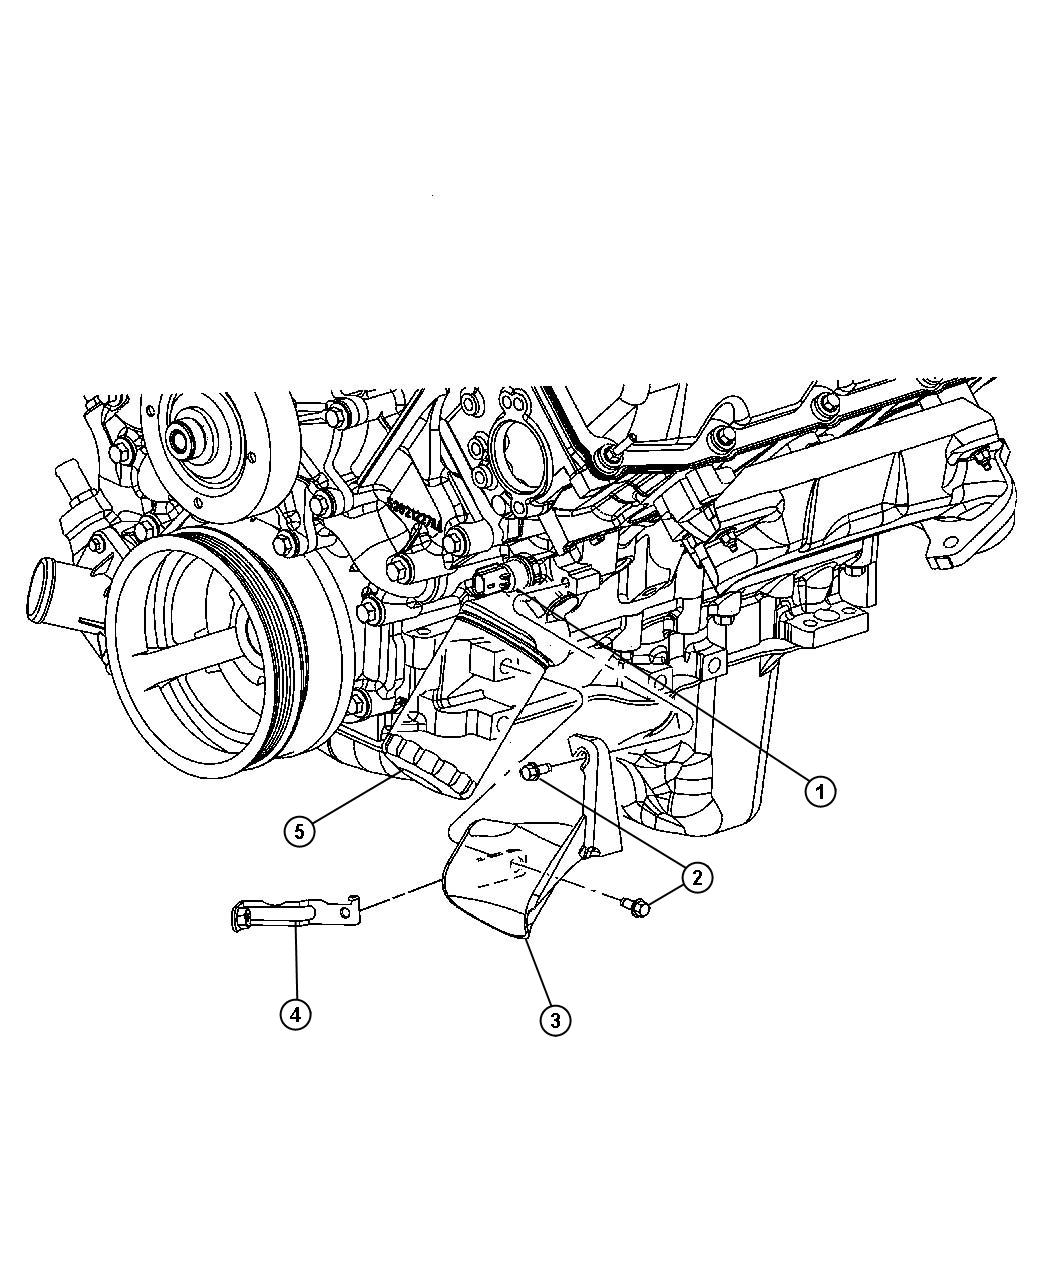 [DIAGRAM] 2008 Jeep Commander Front Drivetrain Diagram